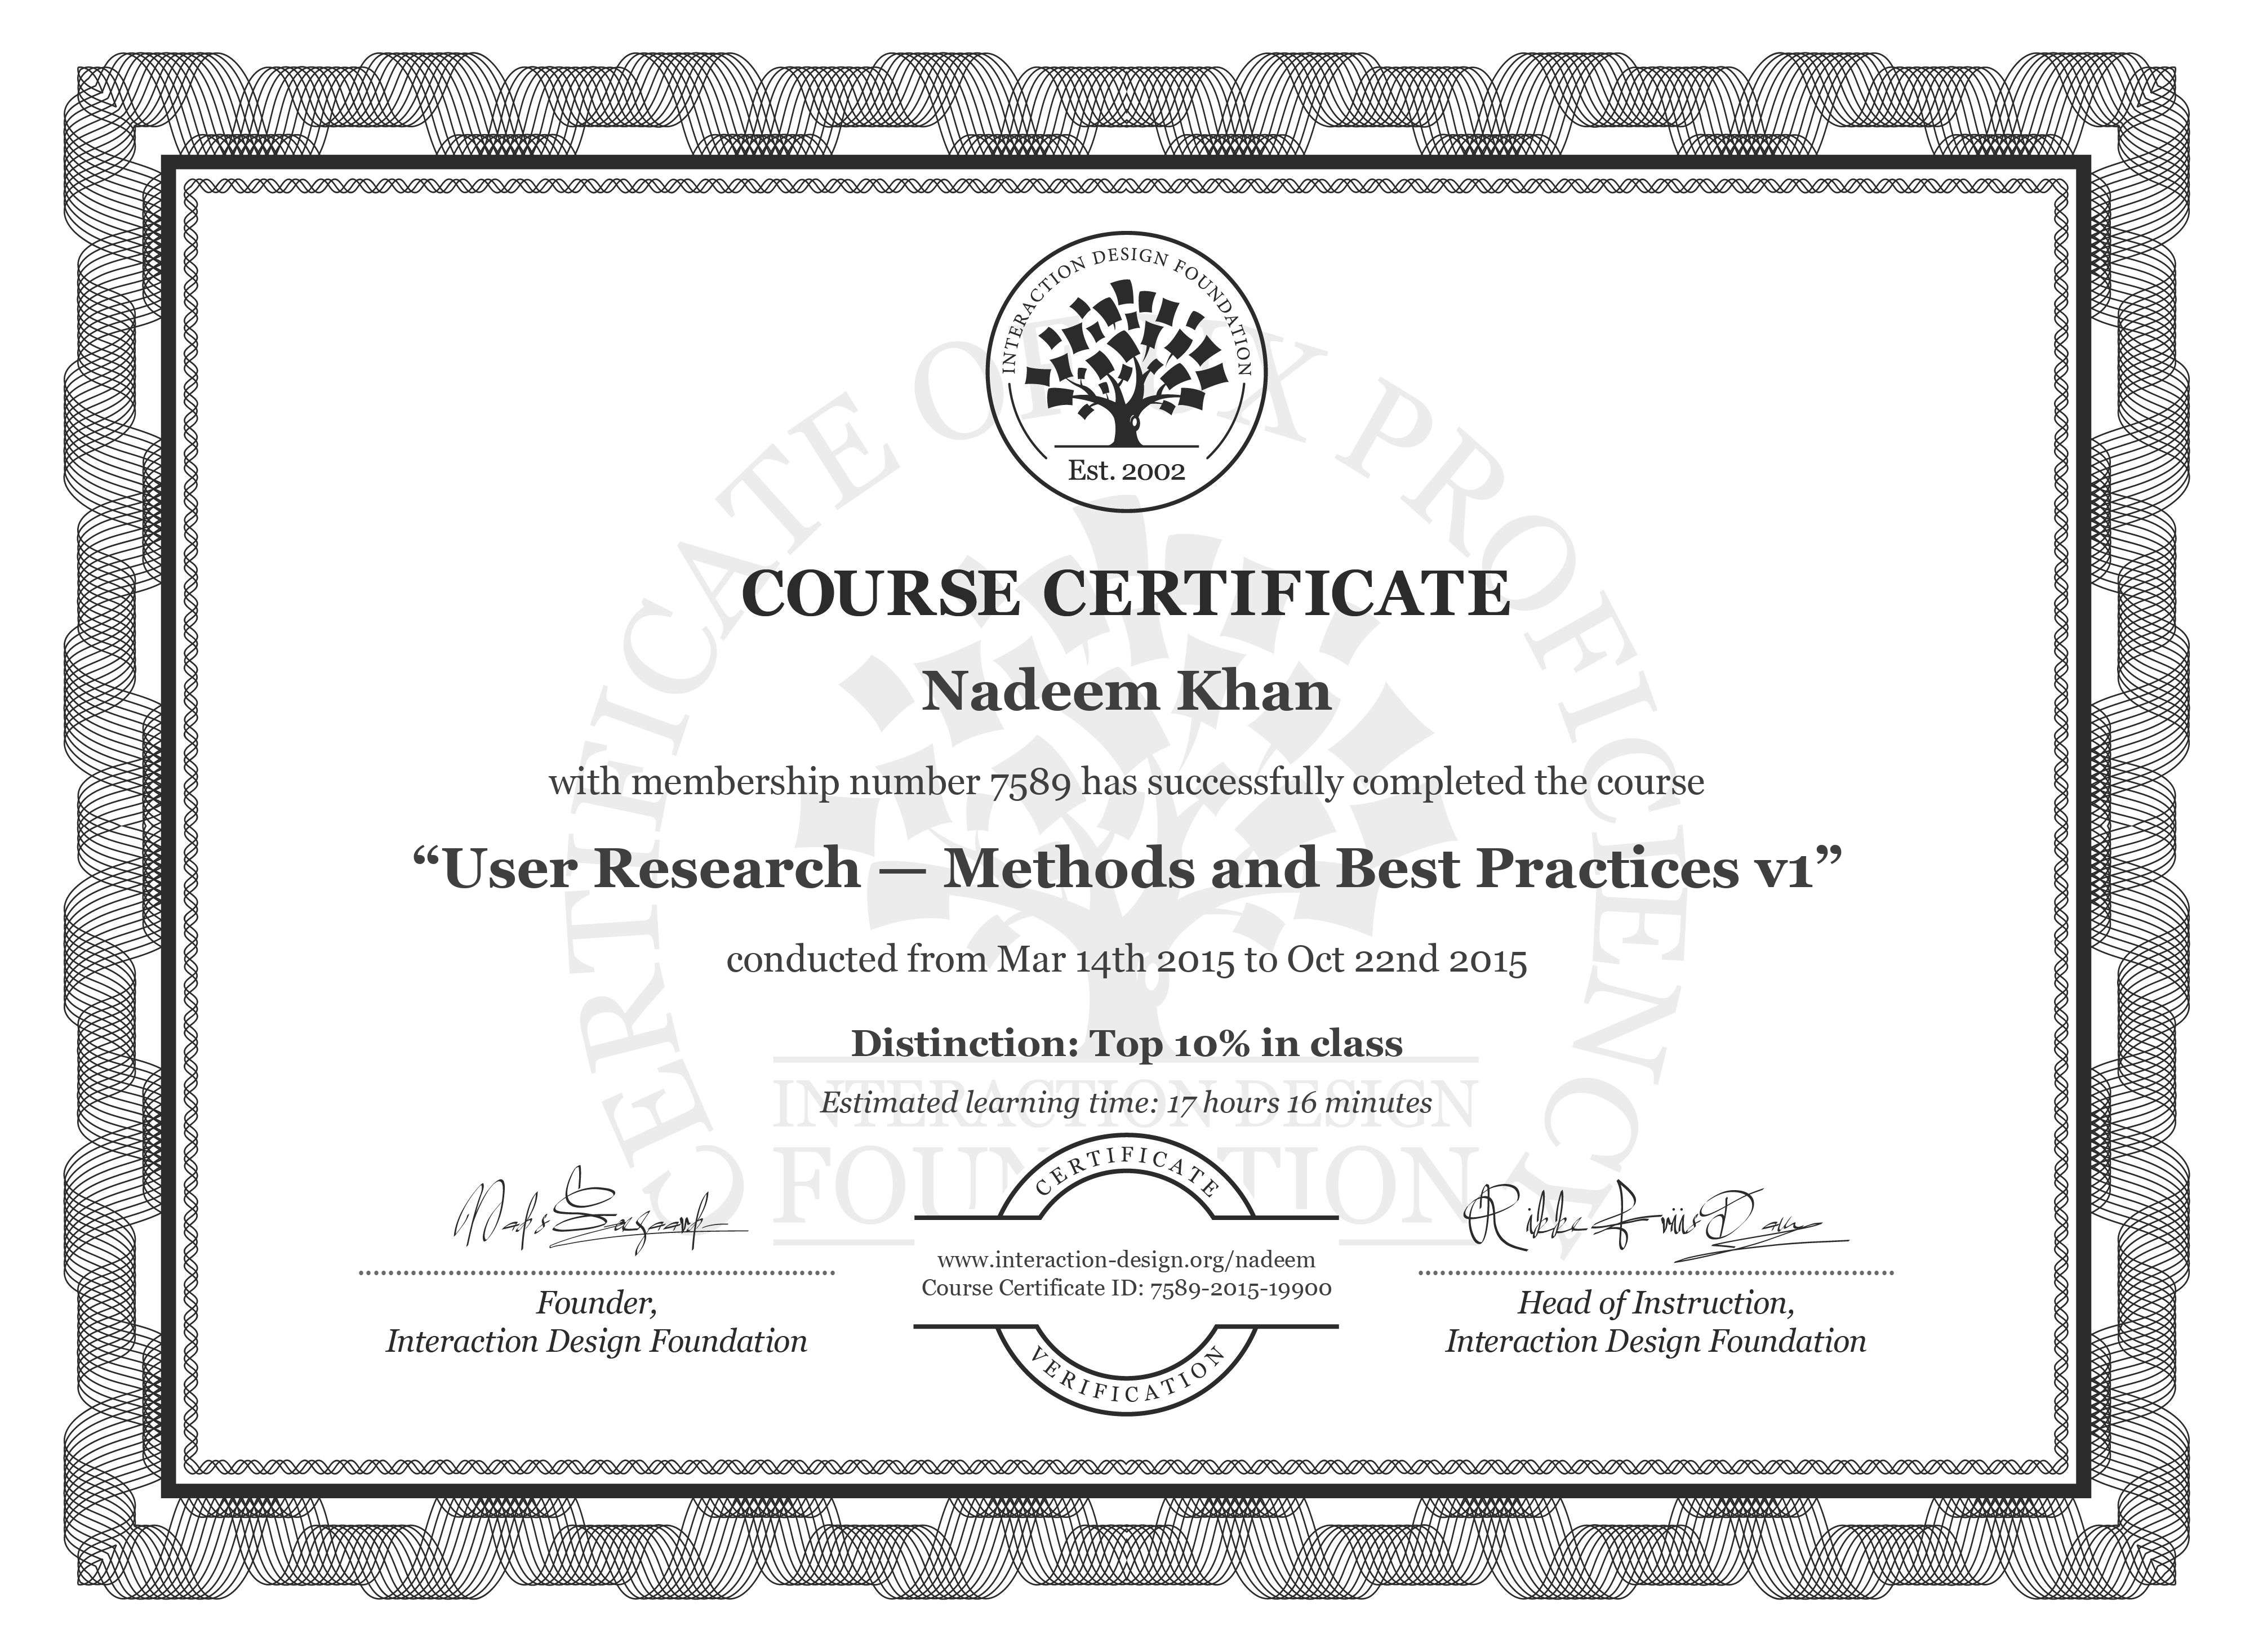 Nadeem Khan: Course Certificate - User Research — Methods and Best Practices